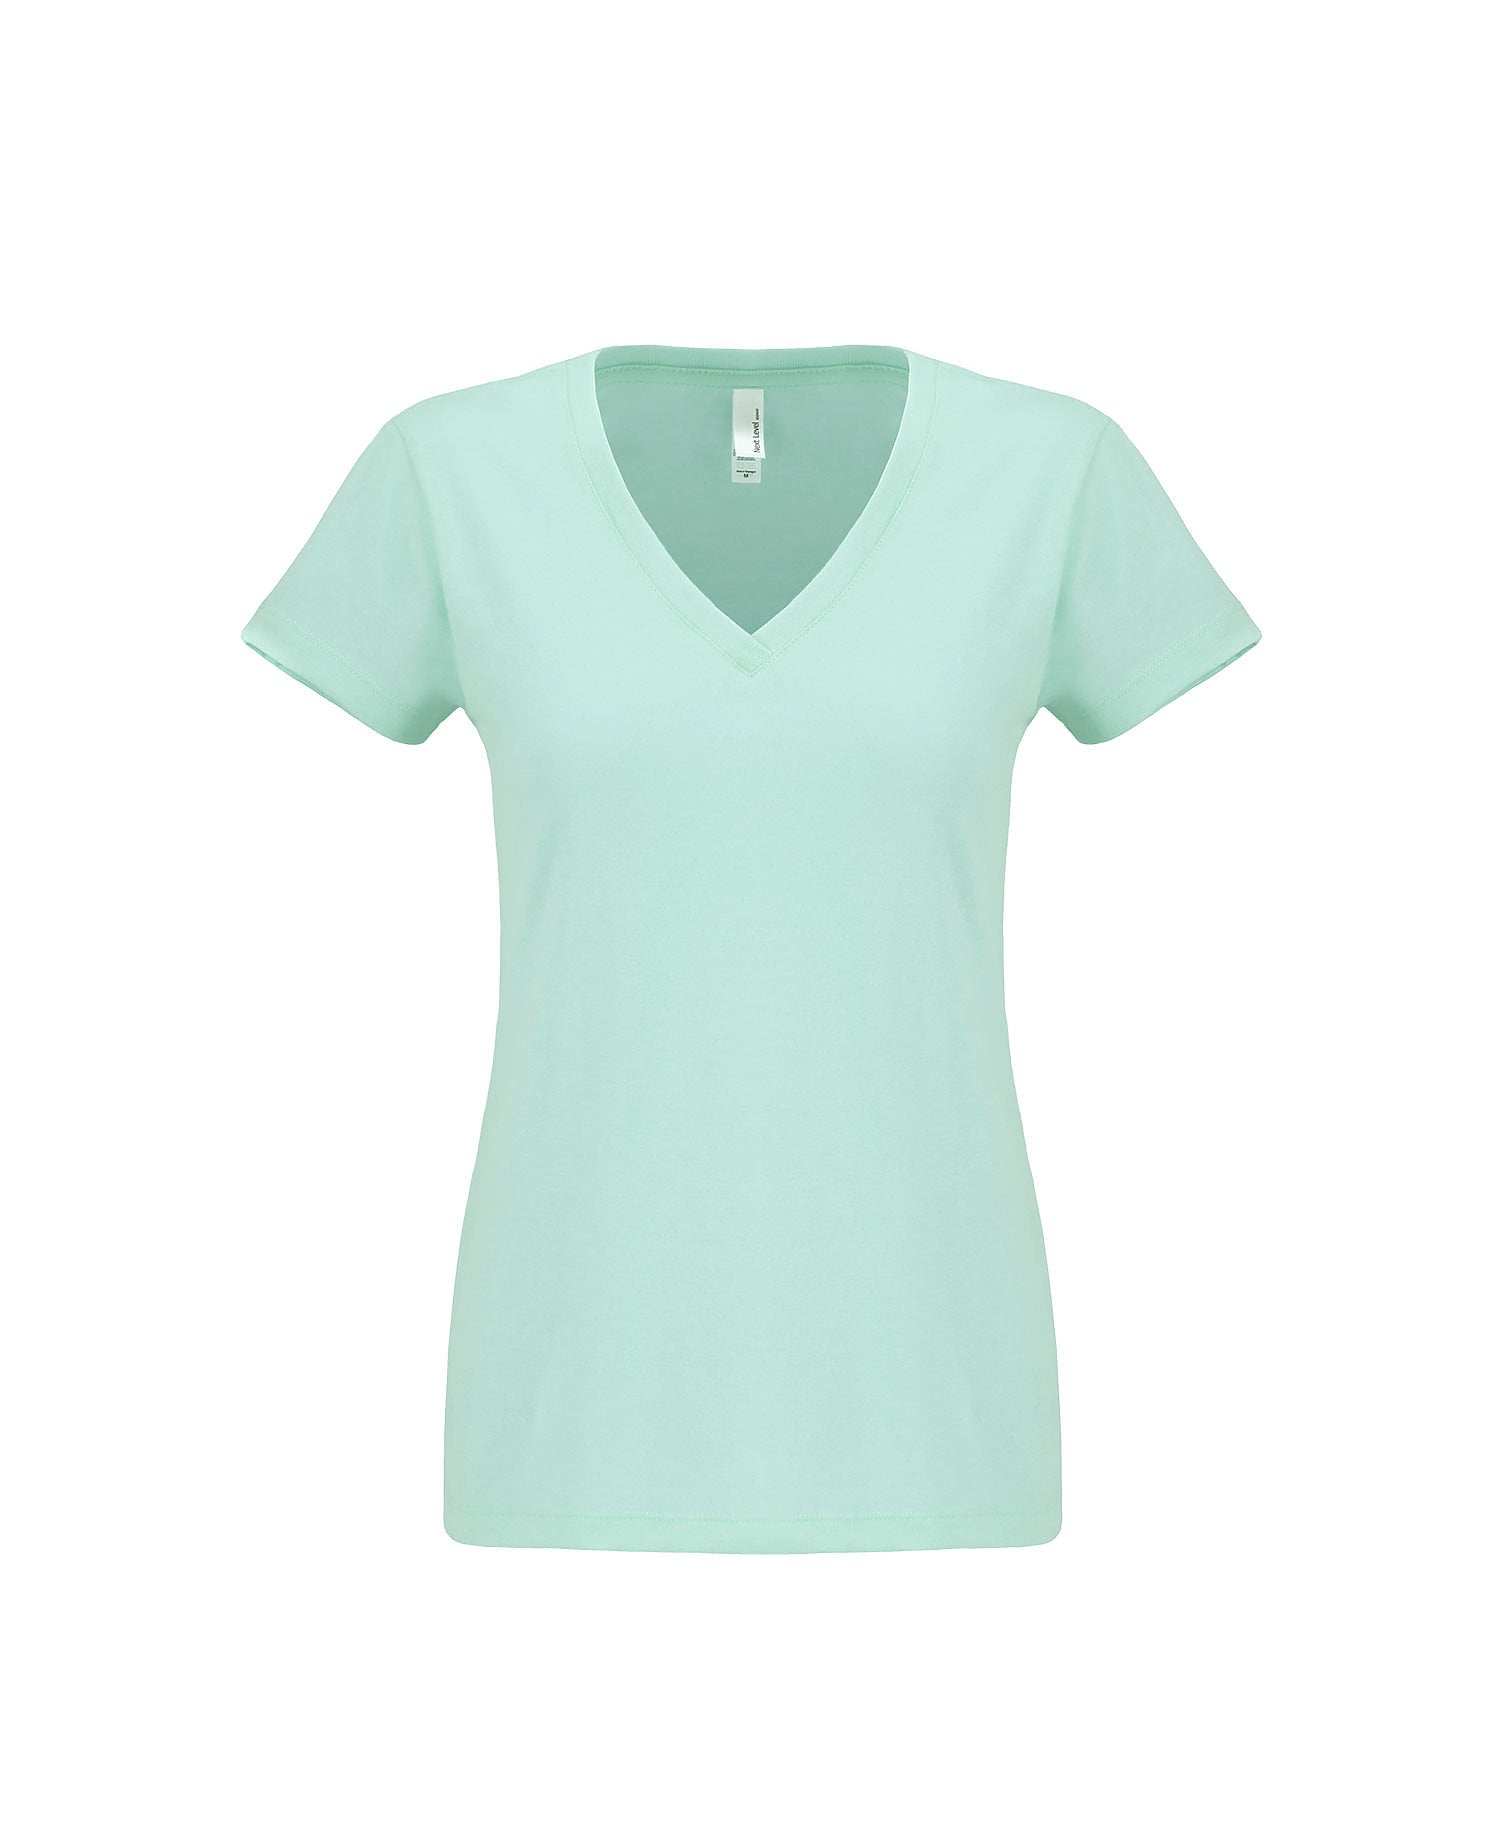 Next-Level-Women-039-s-Sueded-V-Neck-Tee-NL6480 thumbnail 16